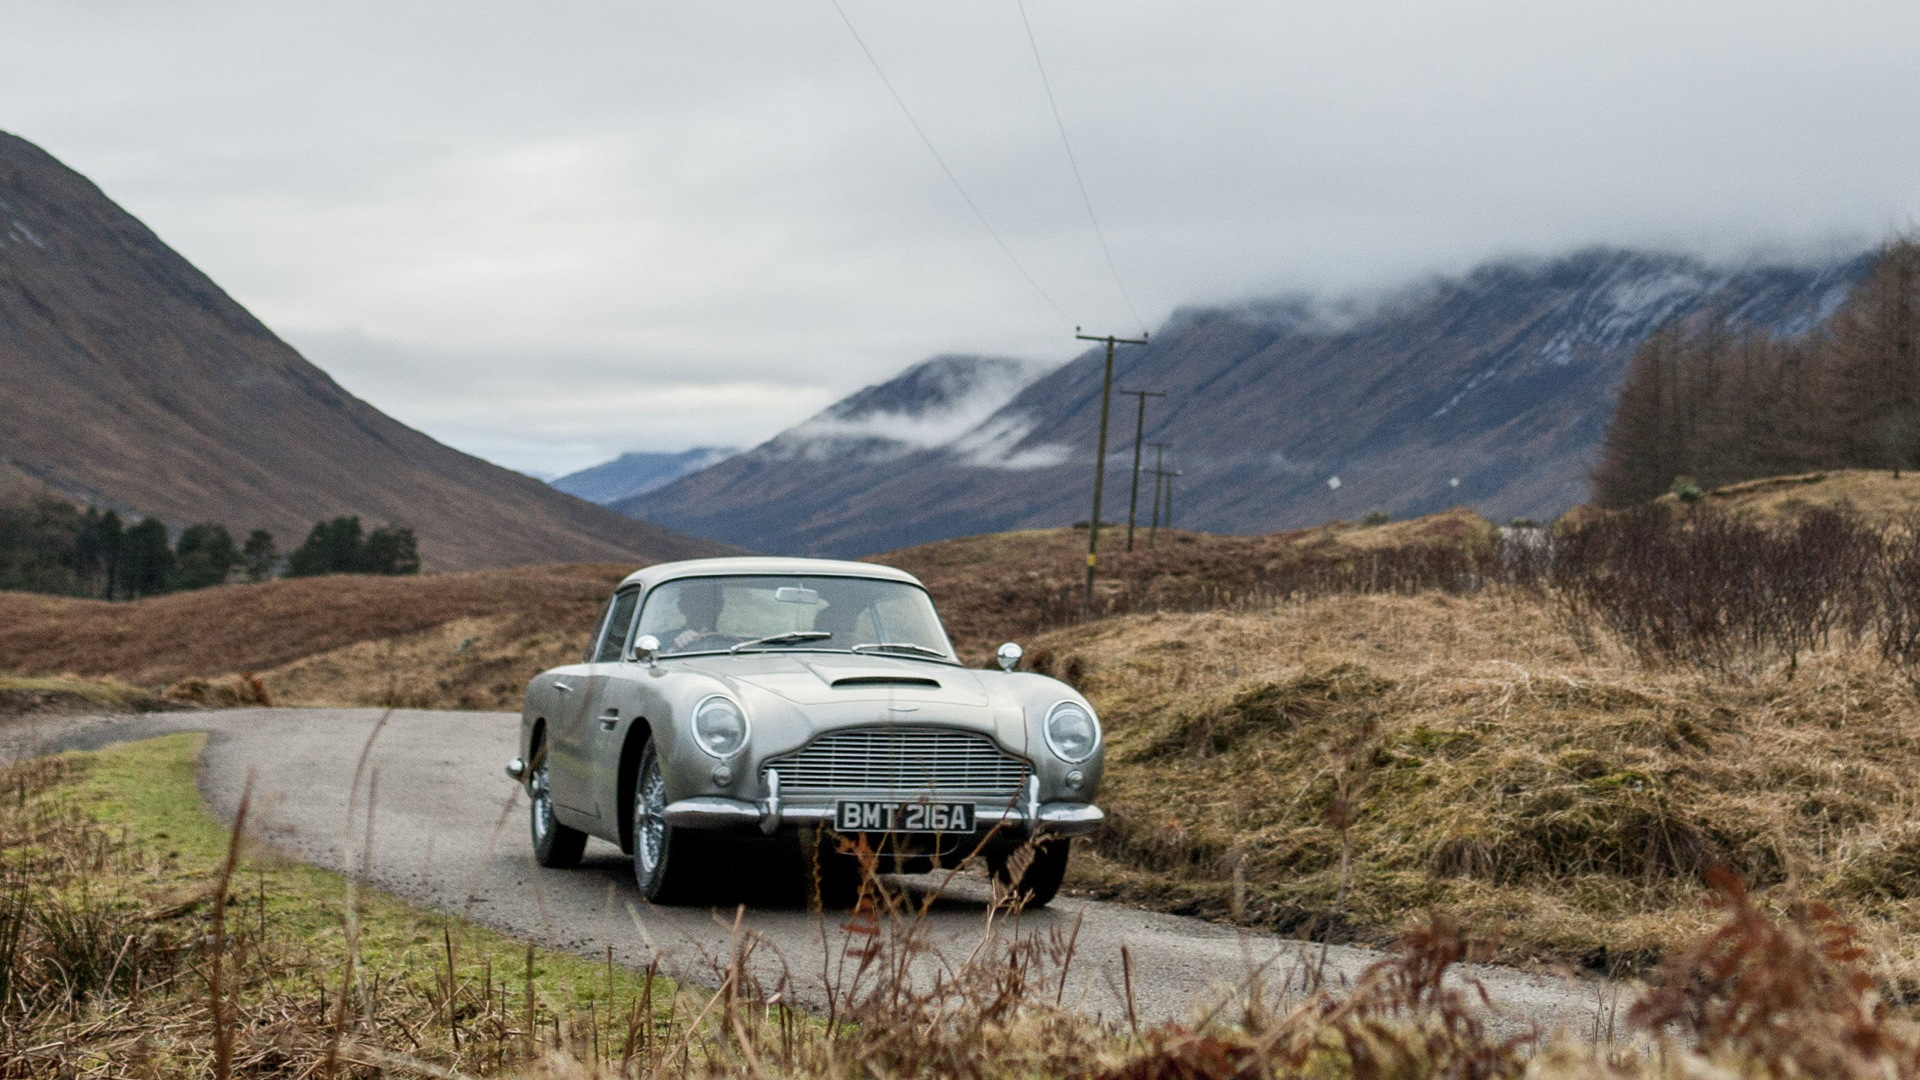 Buy a new James Bond Aston Martin for $3.5 million